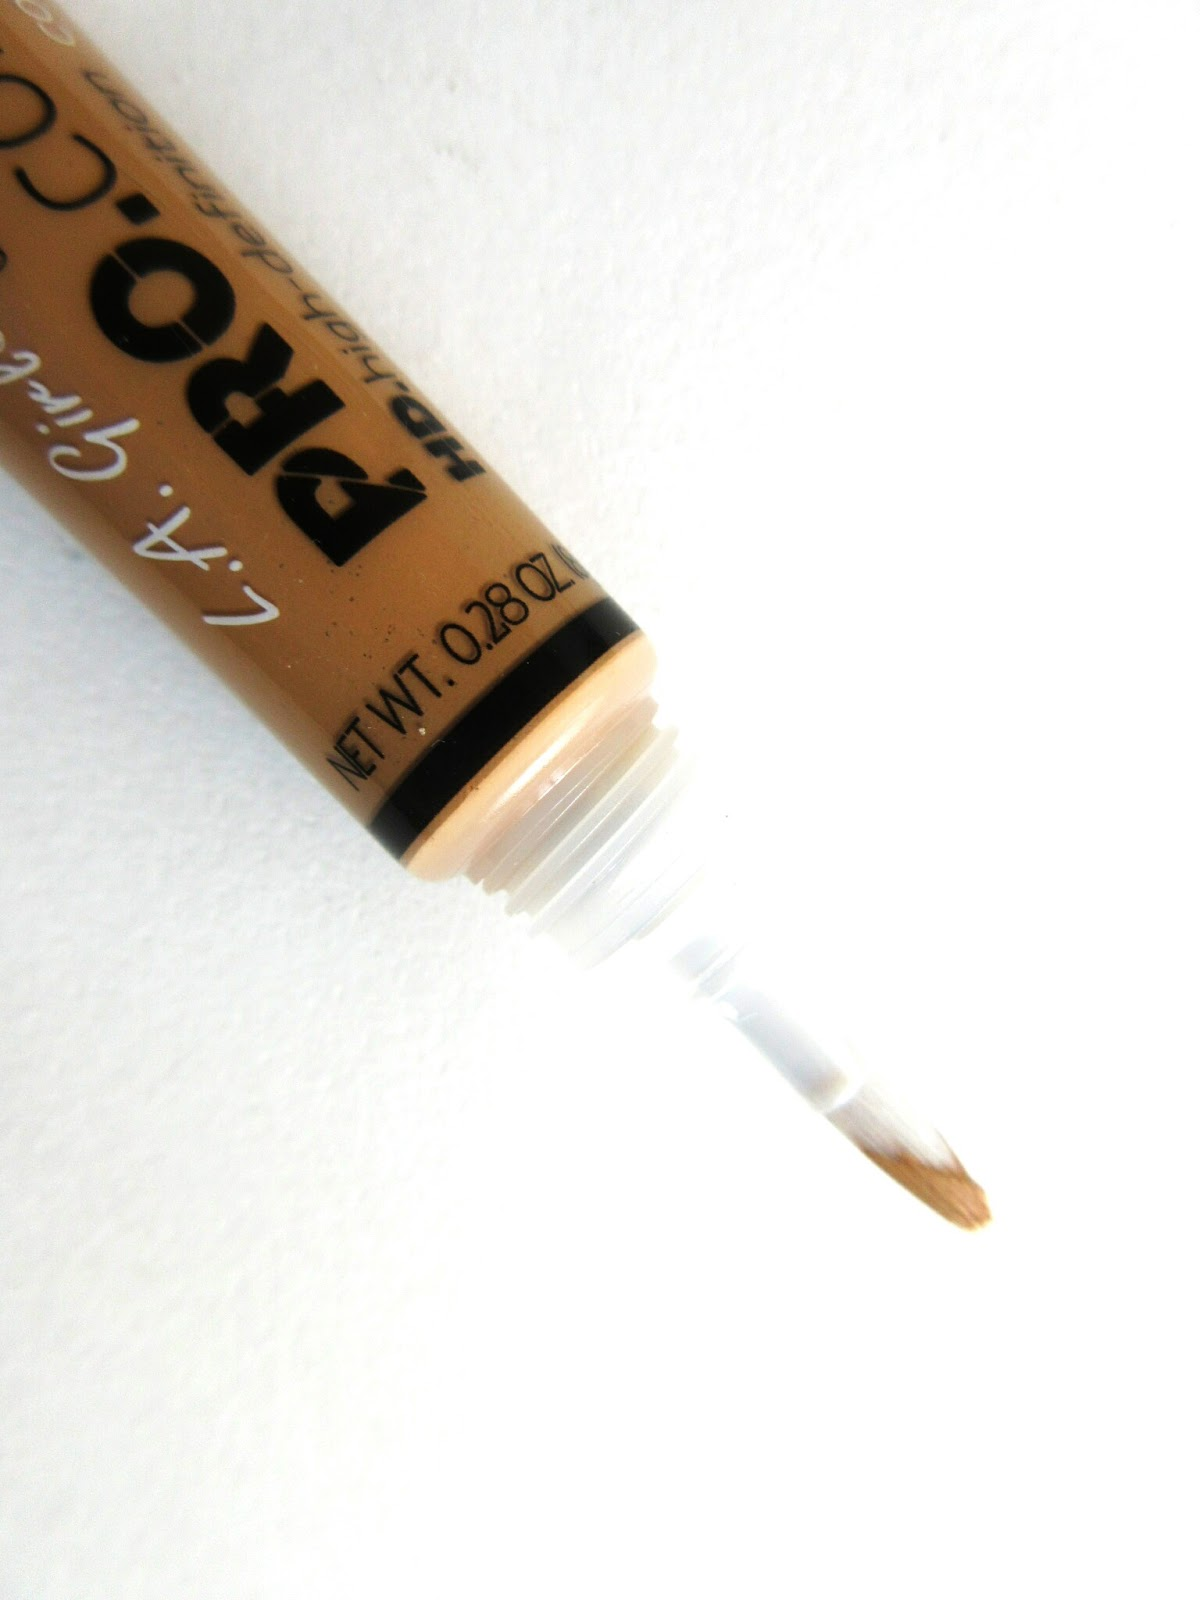 La Girl Pro Conceal Hd Concealer Medium Beige Review Debasree